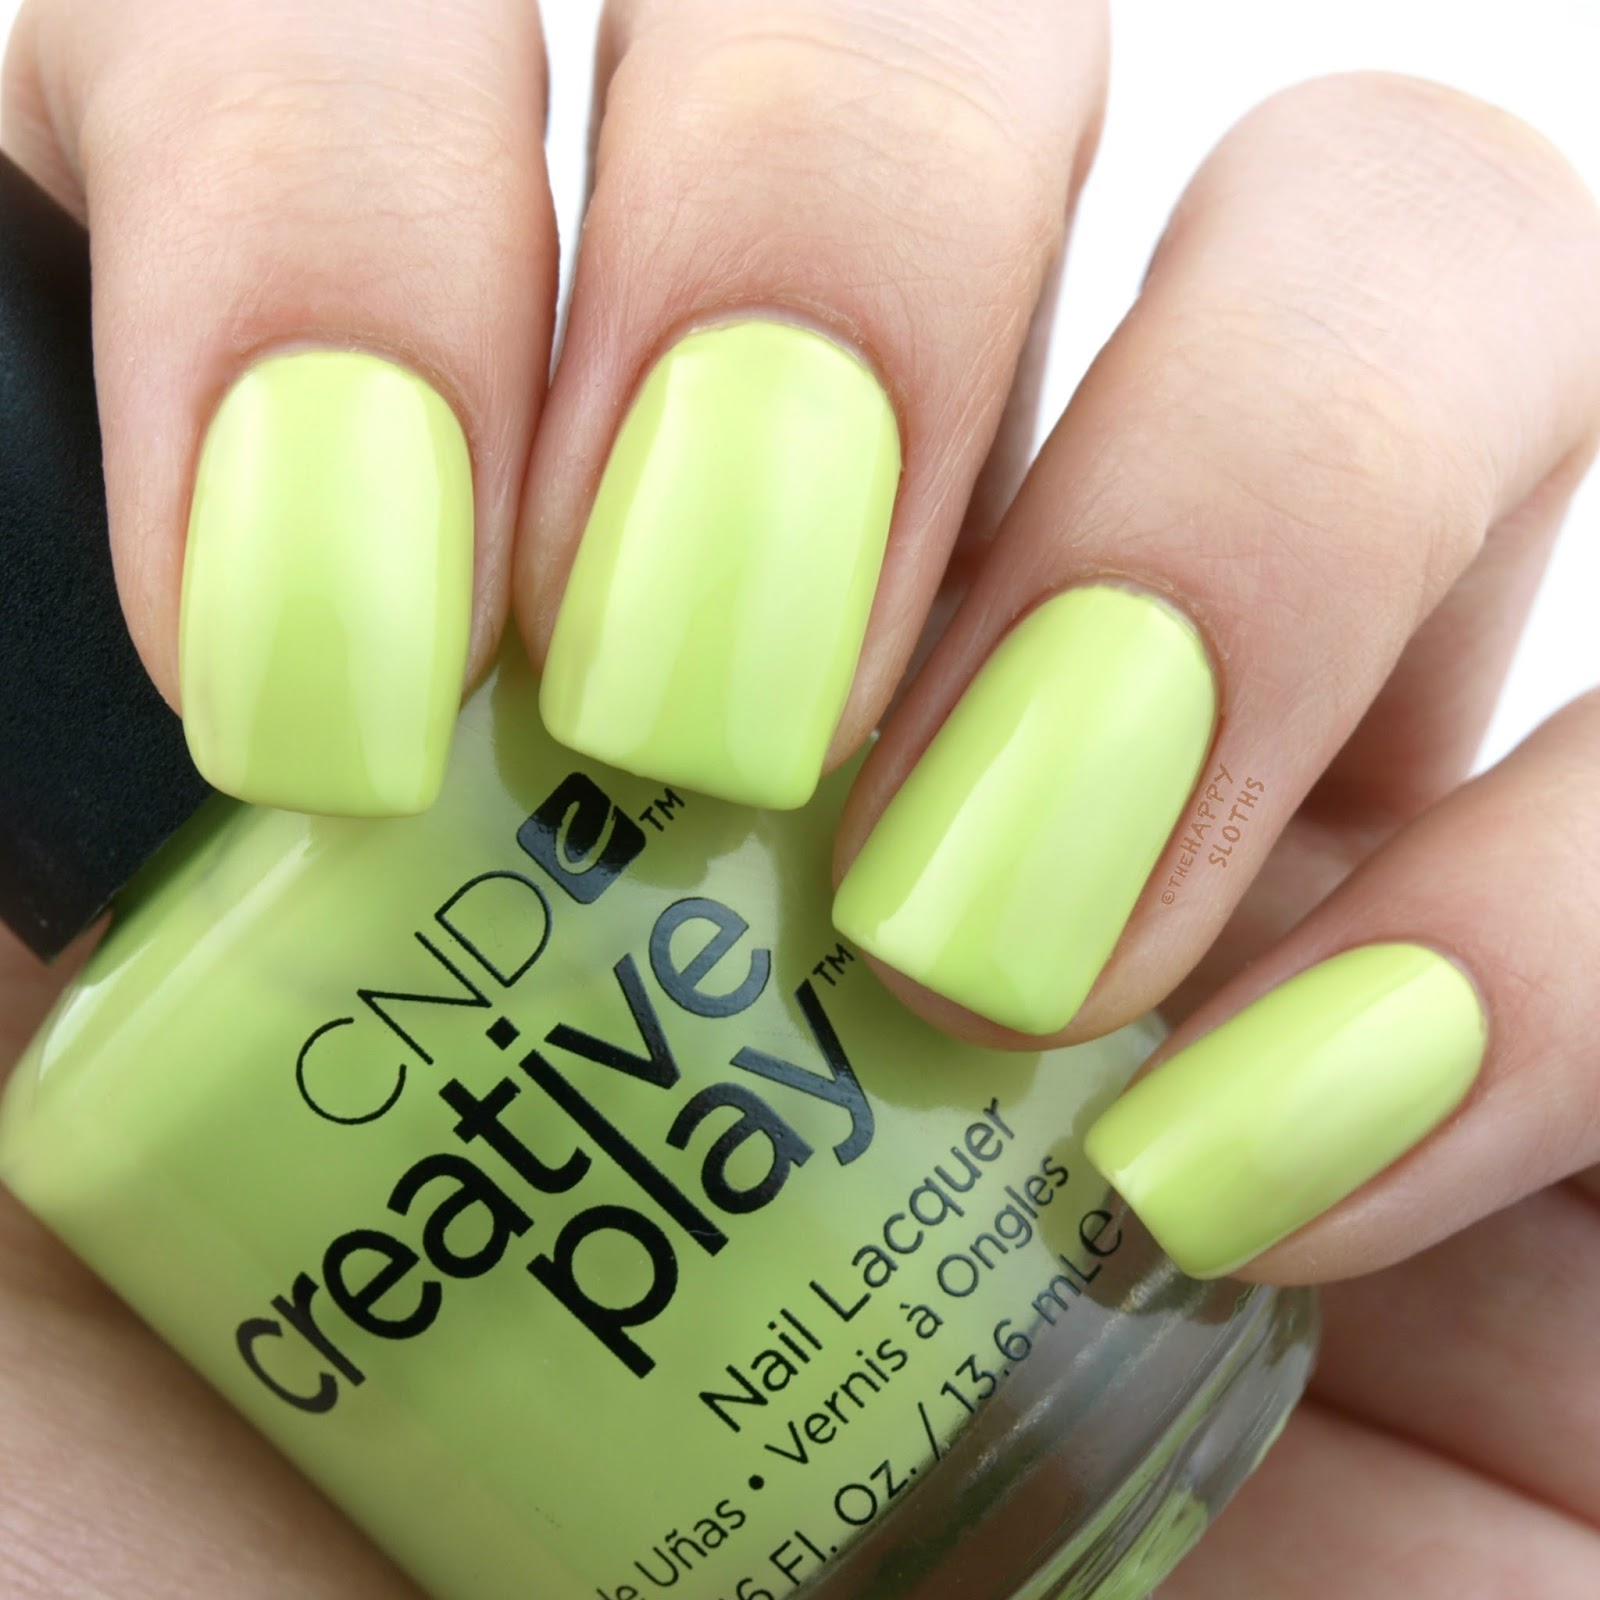 CND Creative Play Playland Collection Carou-celery